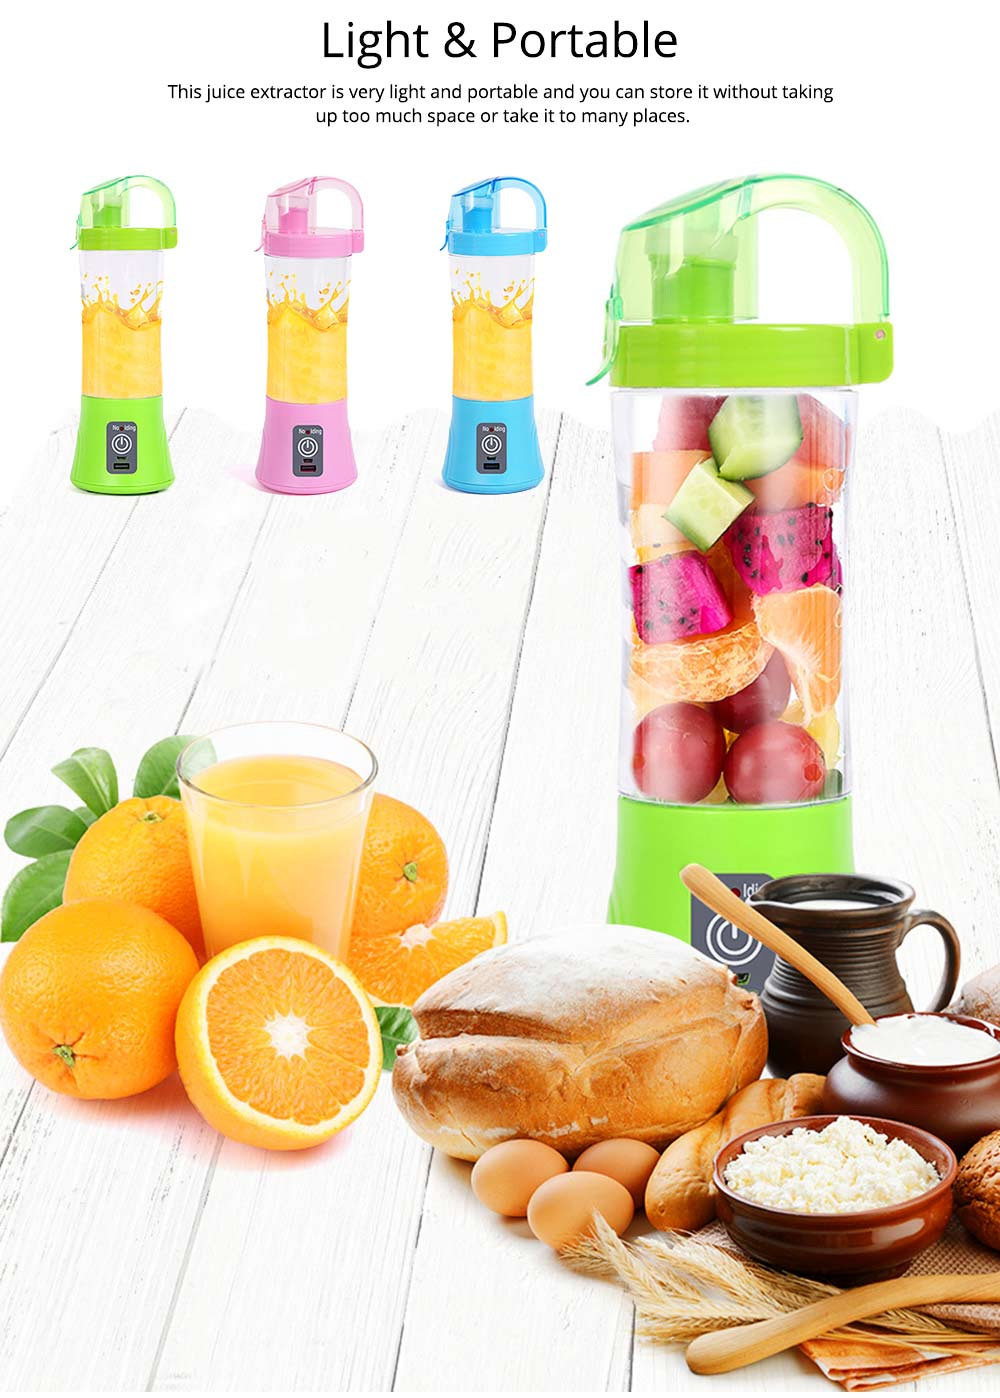 Portable Handy Household Electric Juicer, Multifunctional Juice Extractor Kitchen Tools with Power Bank Function 4